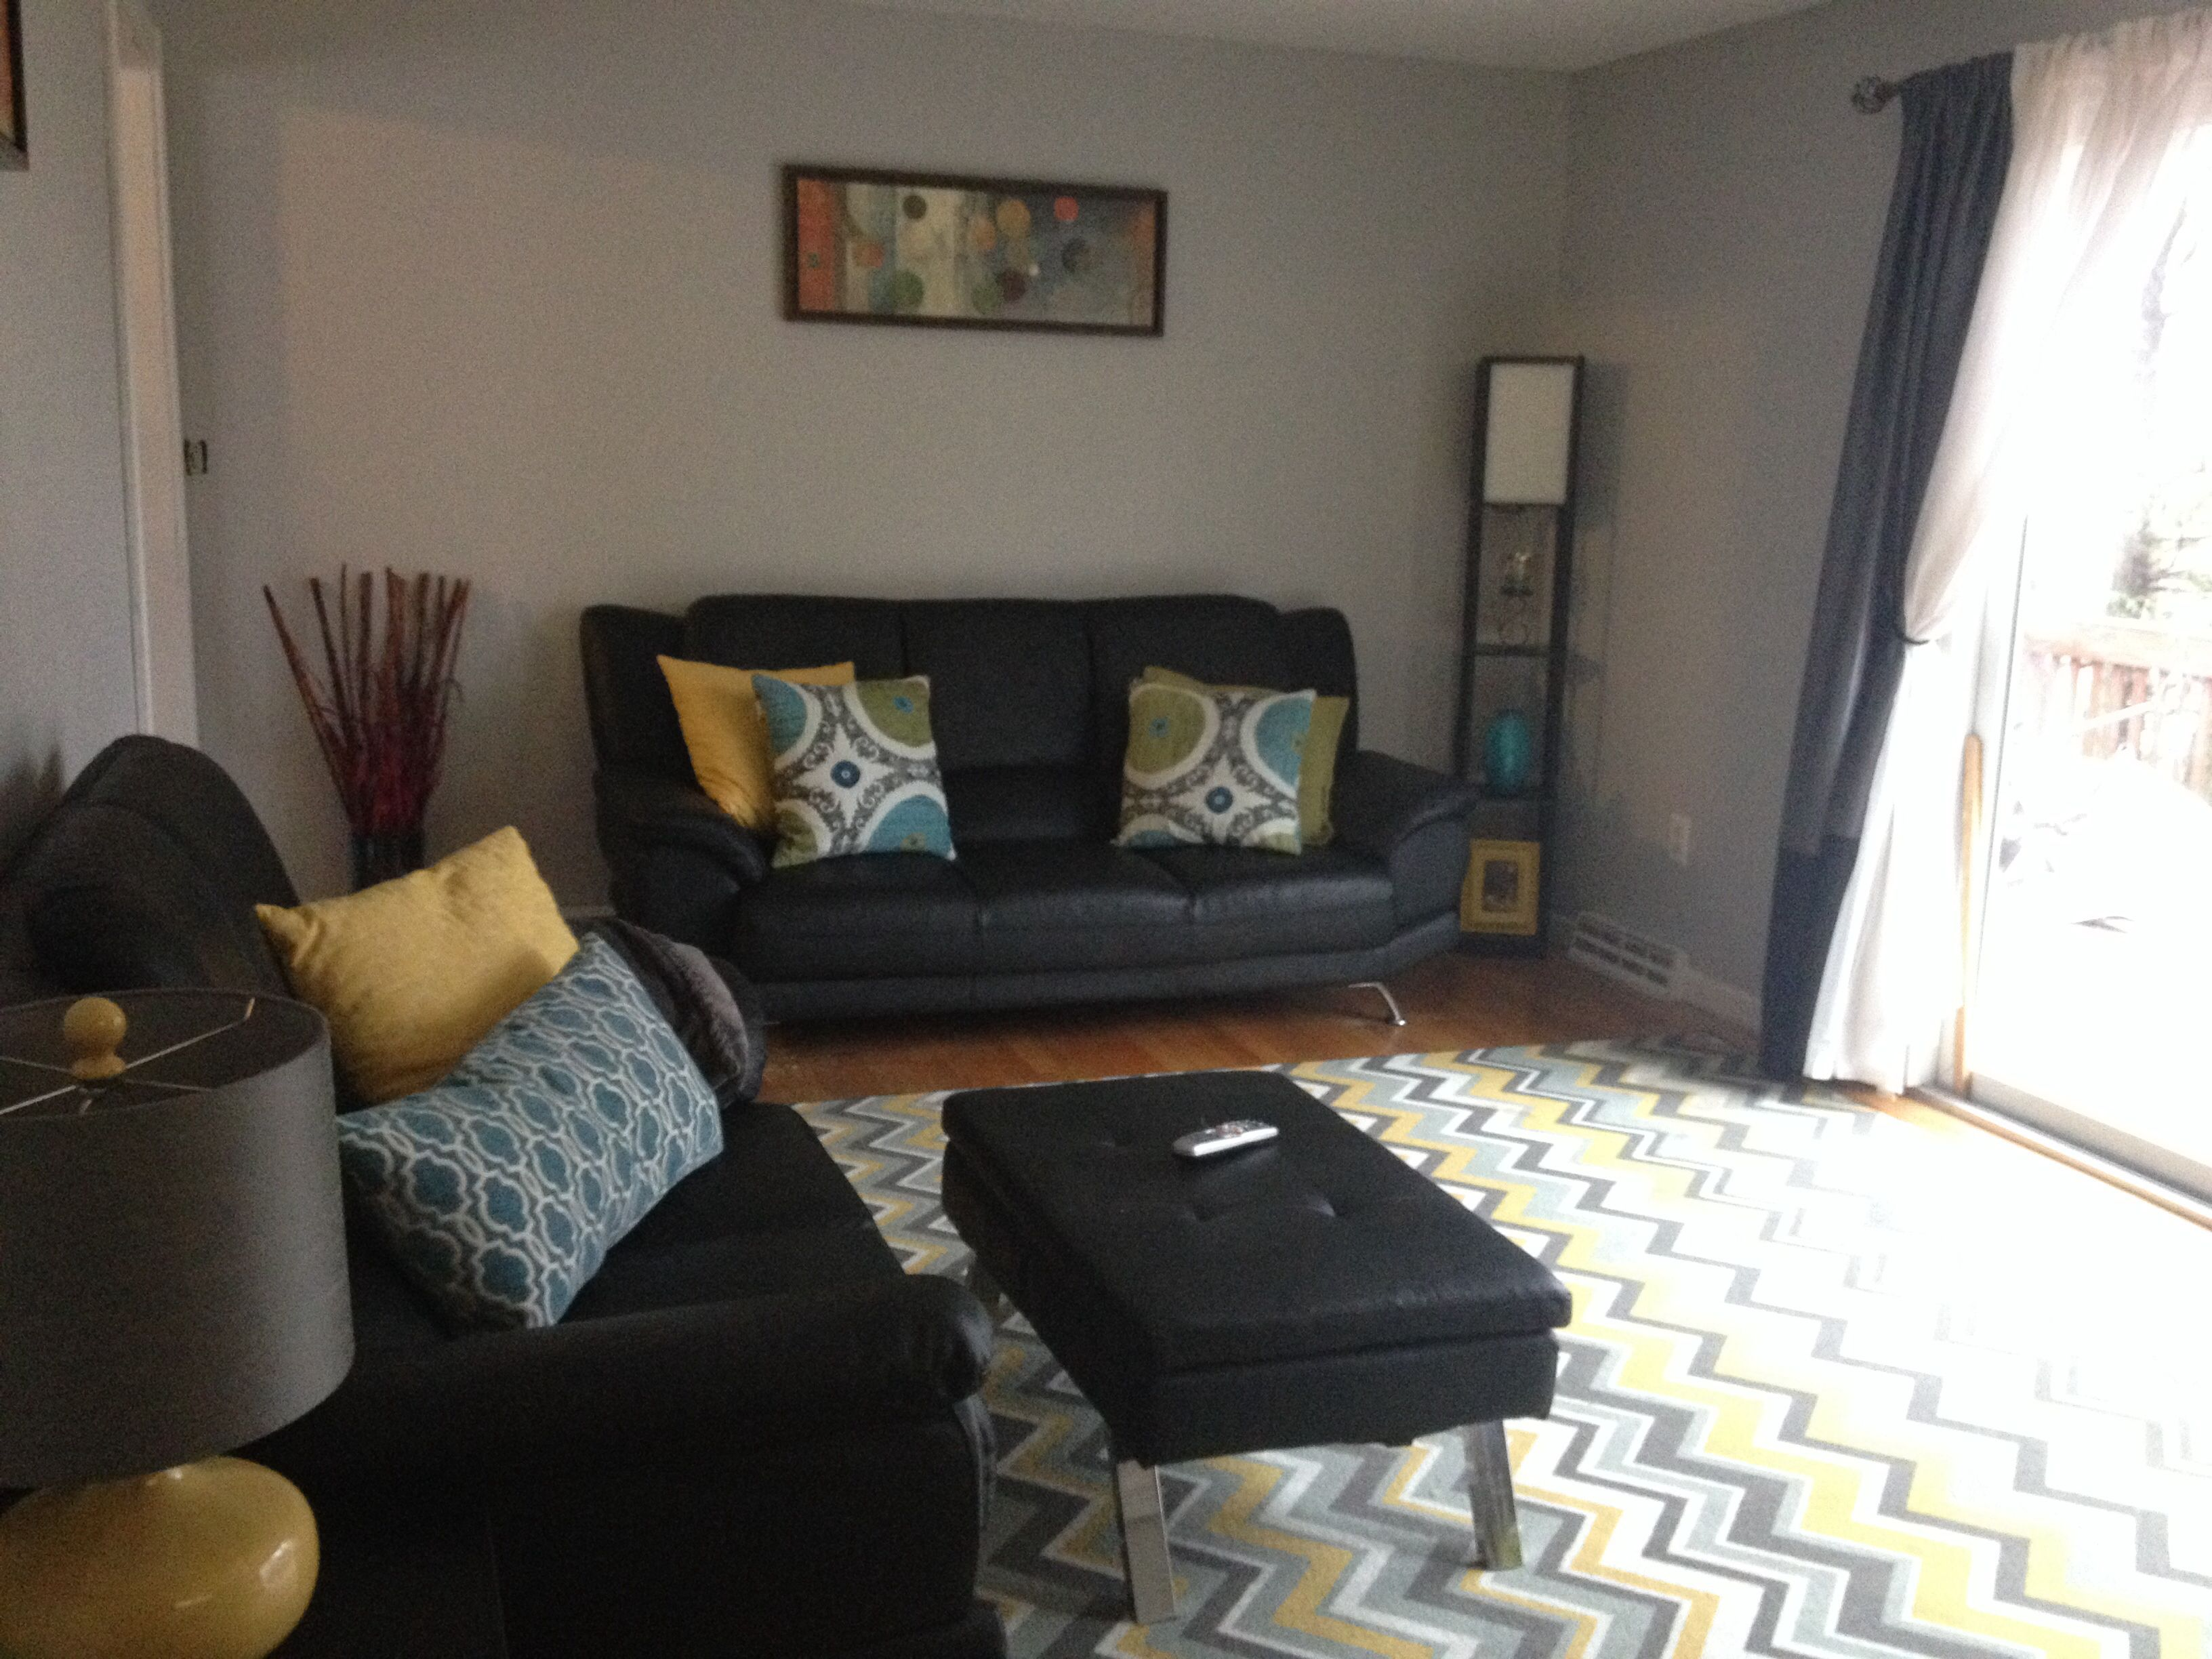 Softening The Look Of Black Couches With Pops Of Color Living Space Decor Home Decor Space Decor #pop #of #color #in #living #room